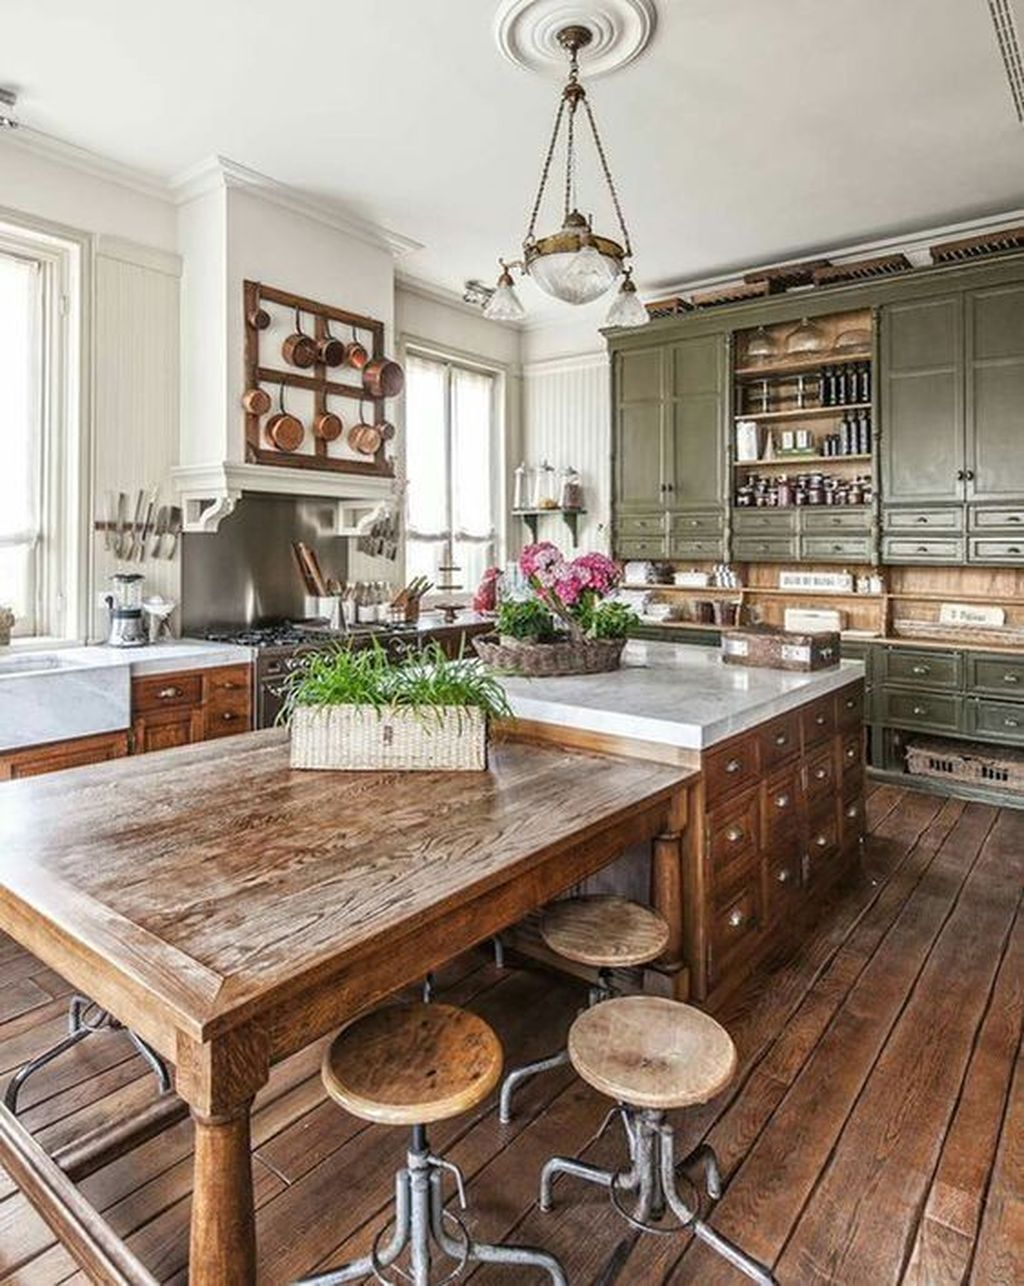 Classy Kitchen Decorating Ideas To Try This Year 30